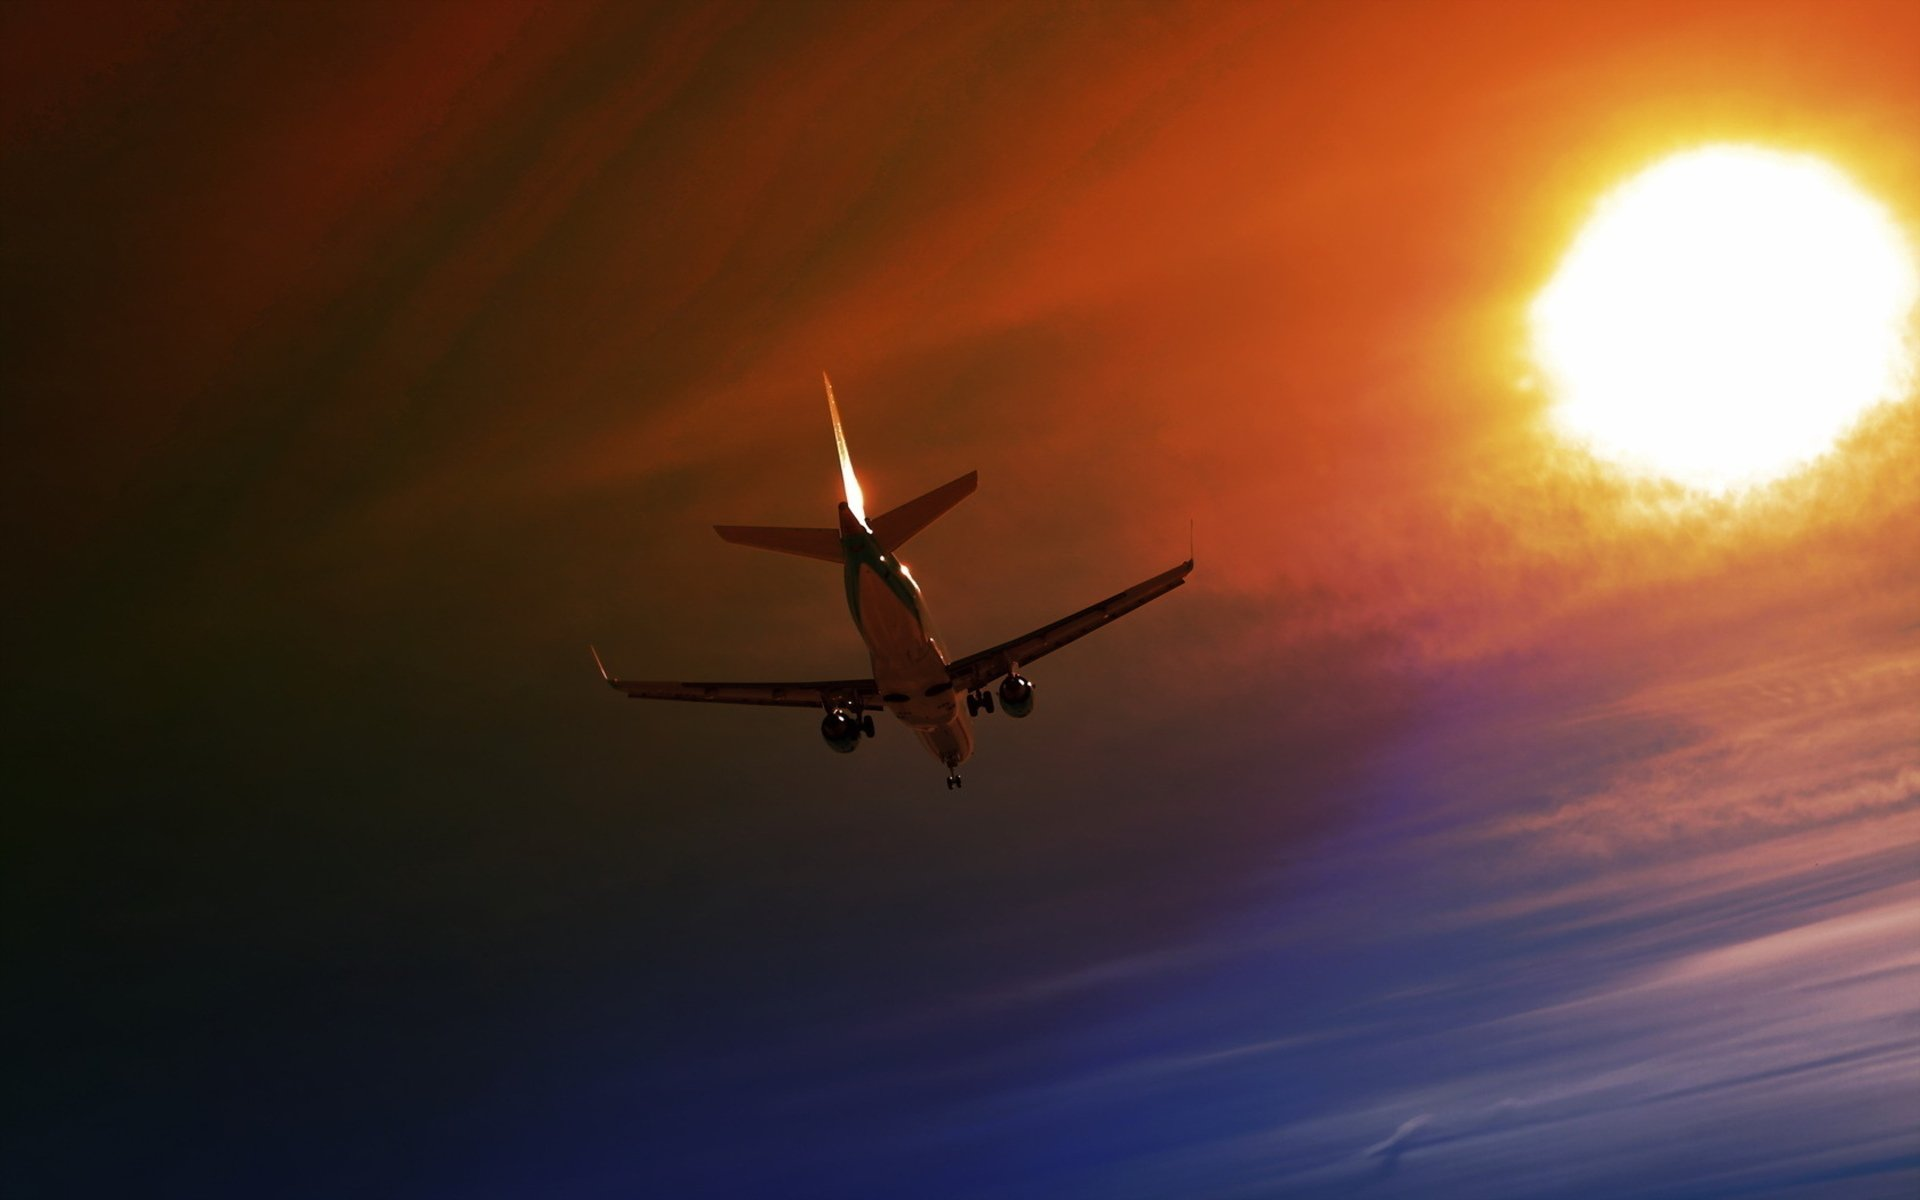 Vehicles - Aircraft  Airplane Fly Sunset Sky Sun Wallpaper